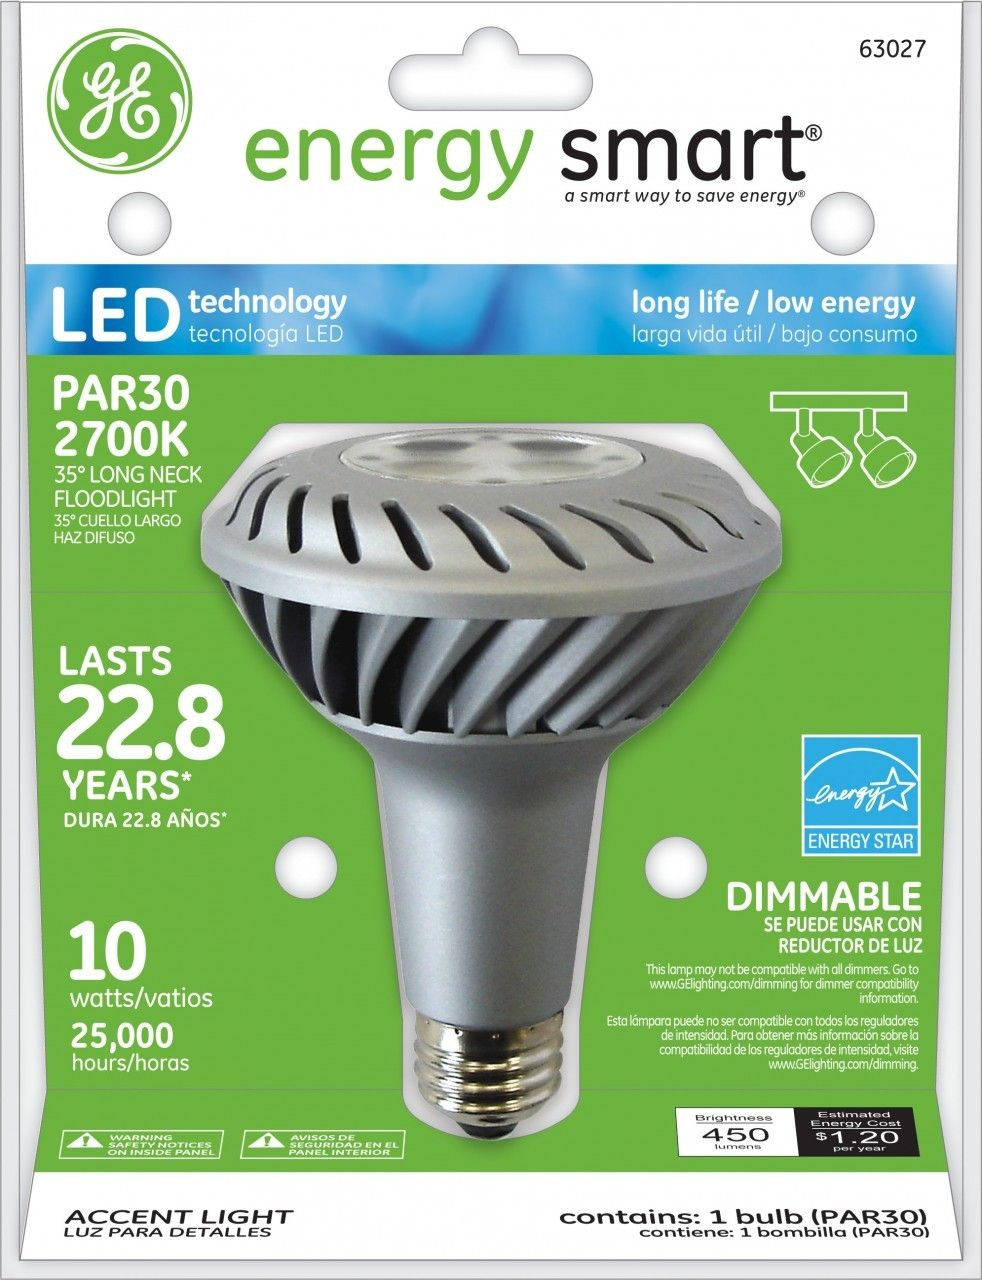 Green Supply for now and future GE Energy Smart 45W